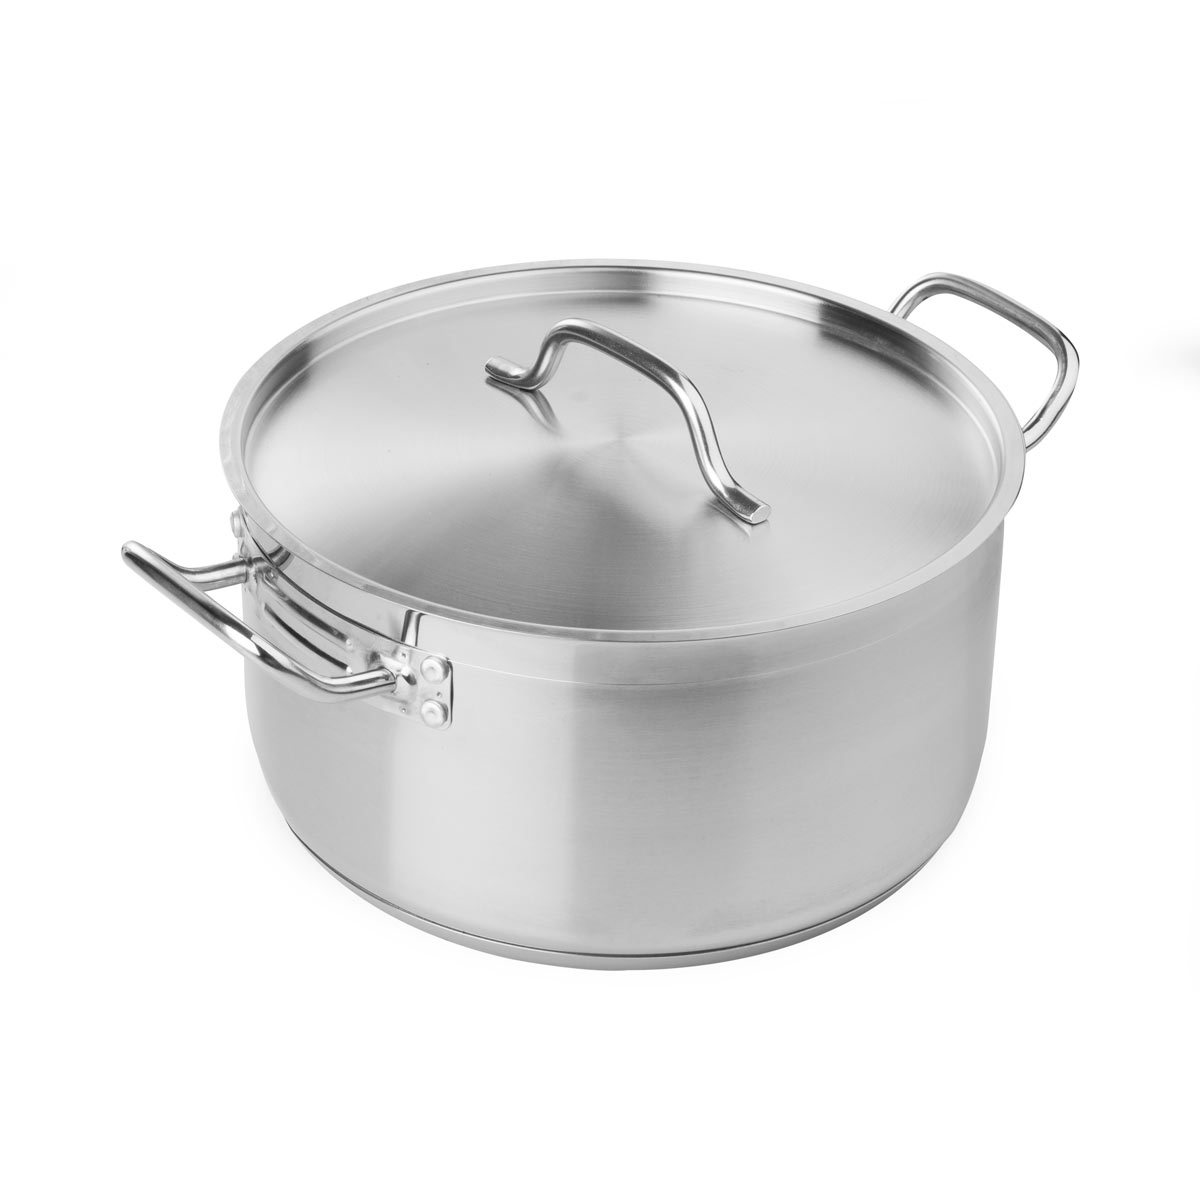 8 Qt. Induction-Ready Stainless Steel Braiser by